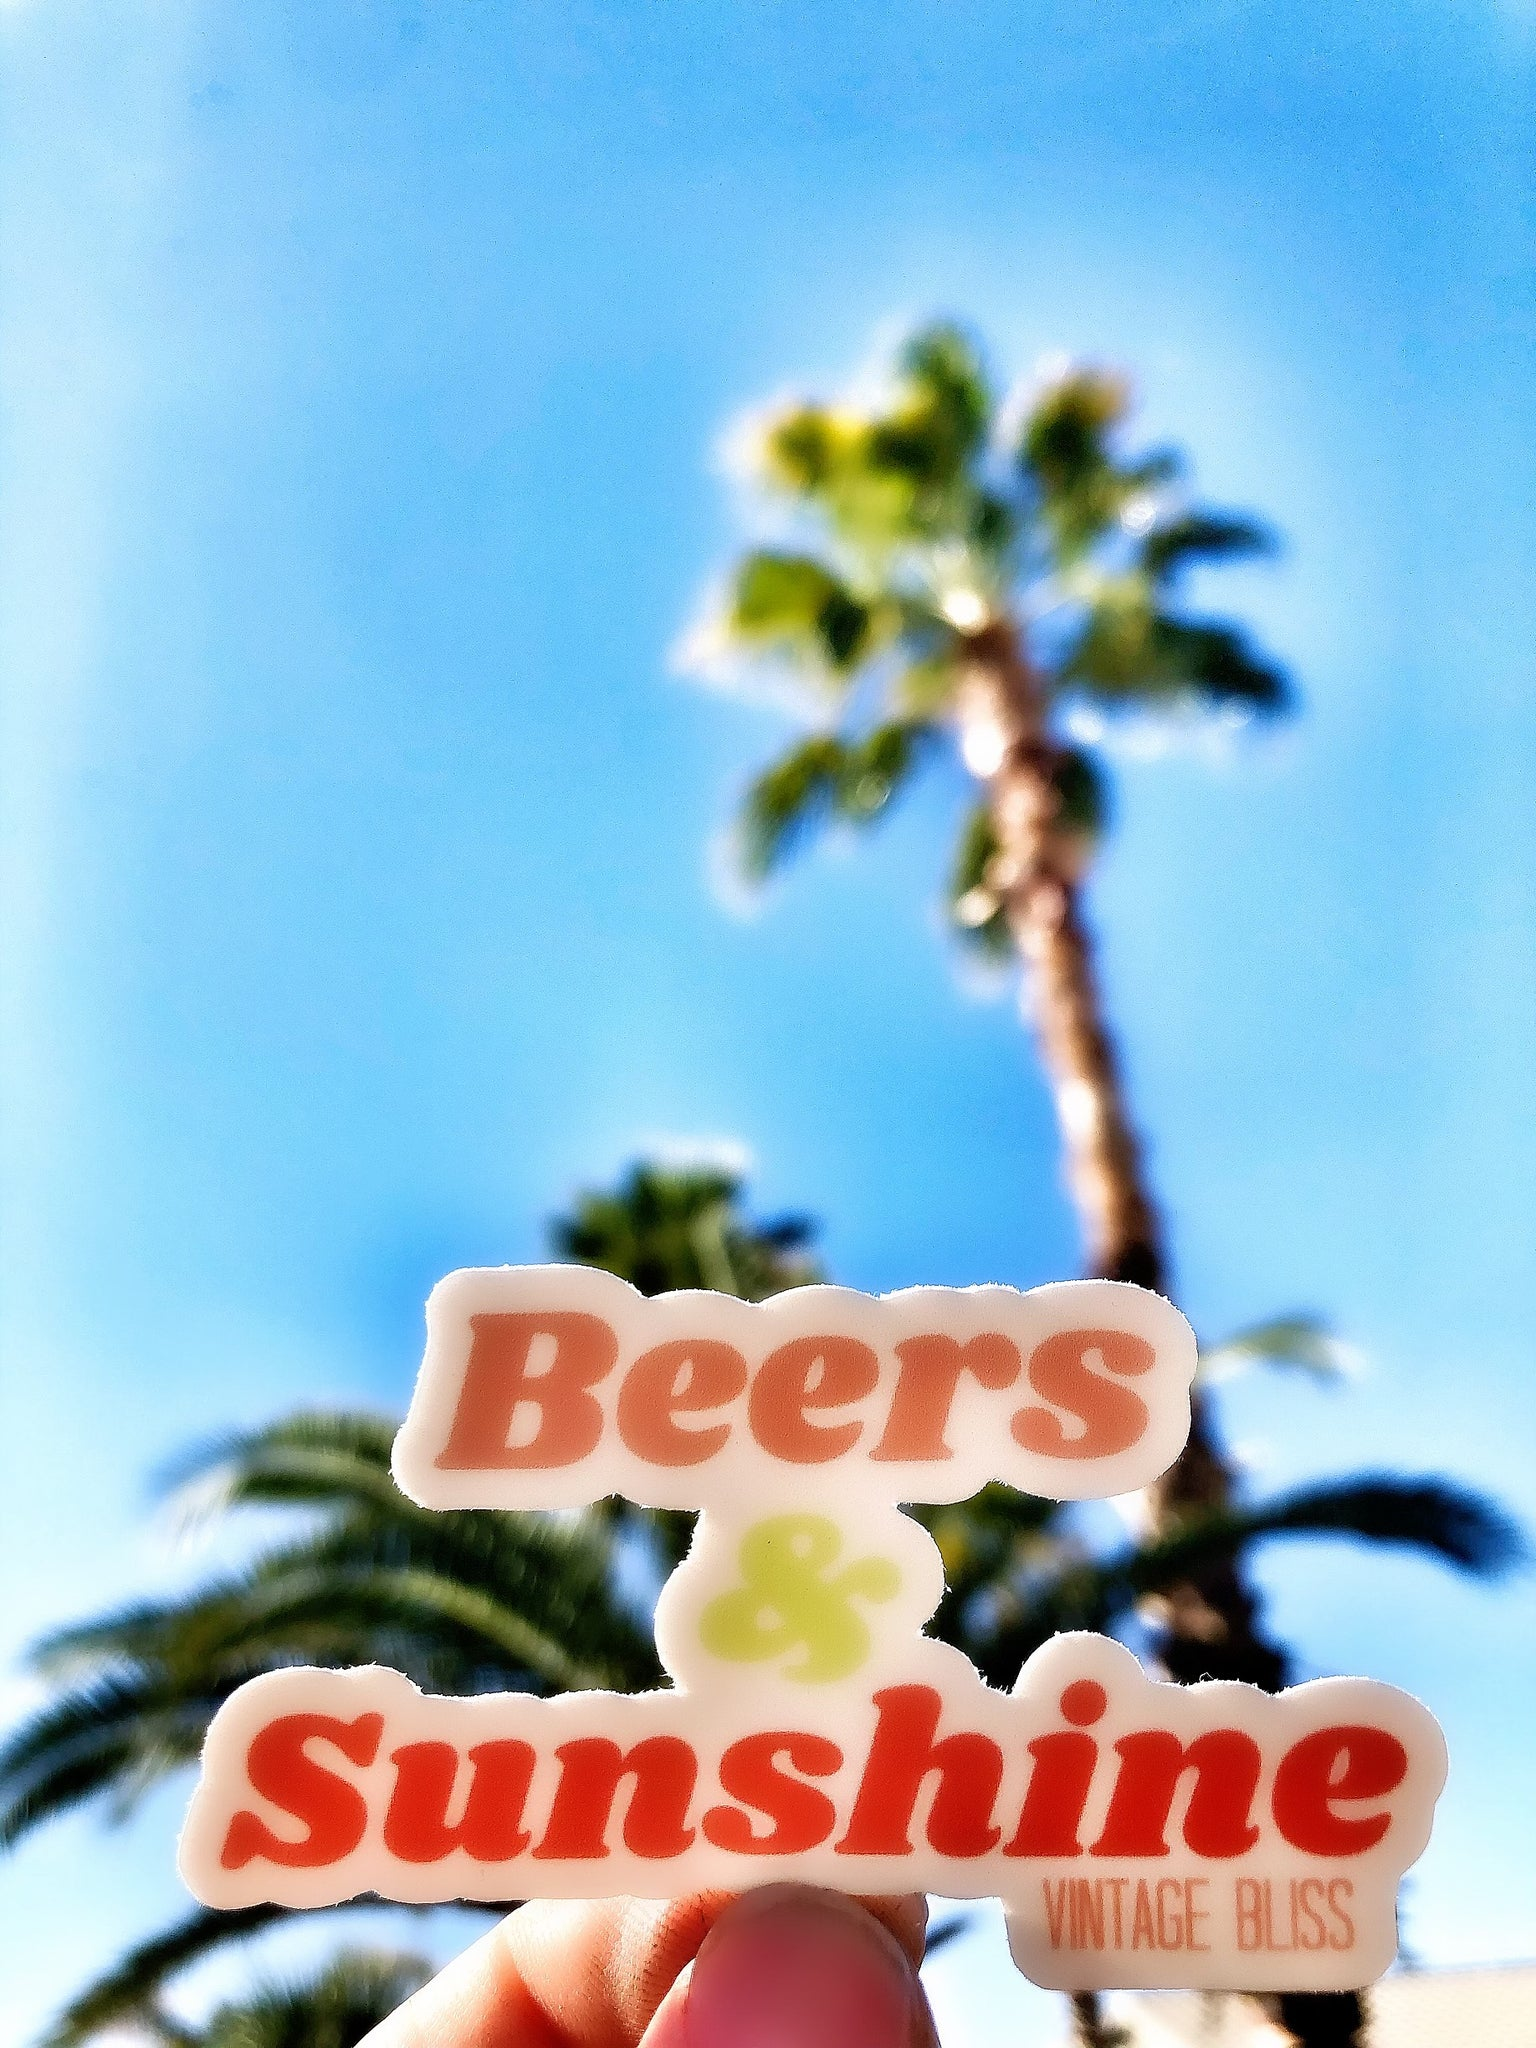 Beers & Sunshine Waterproof Sticker